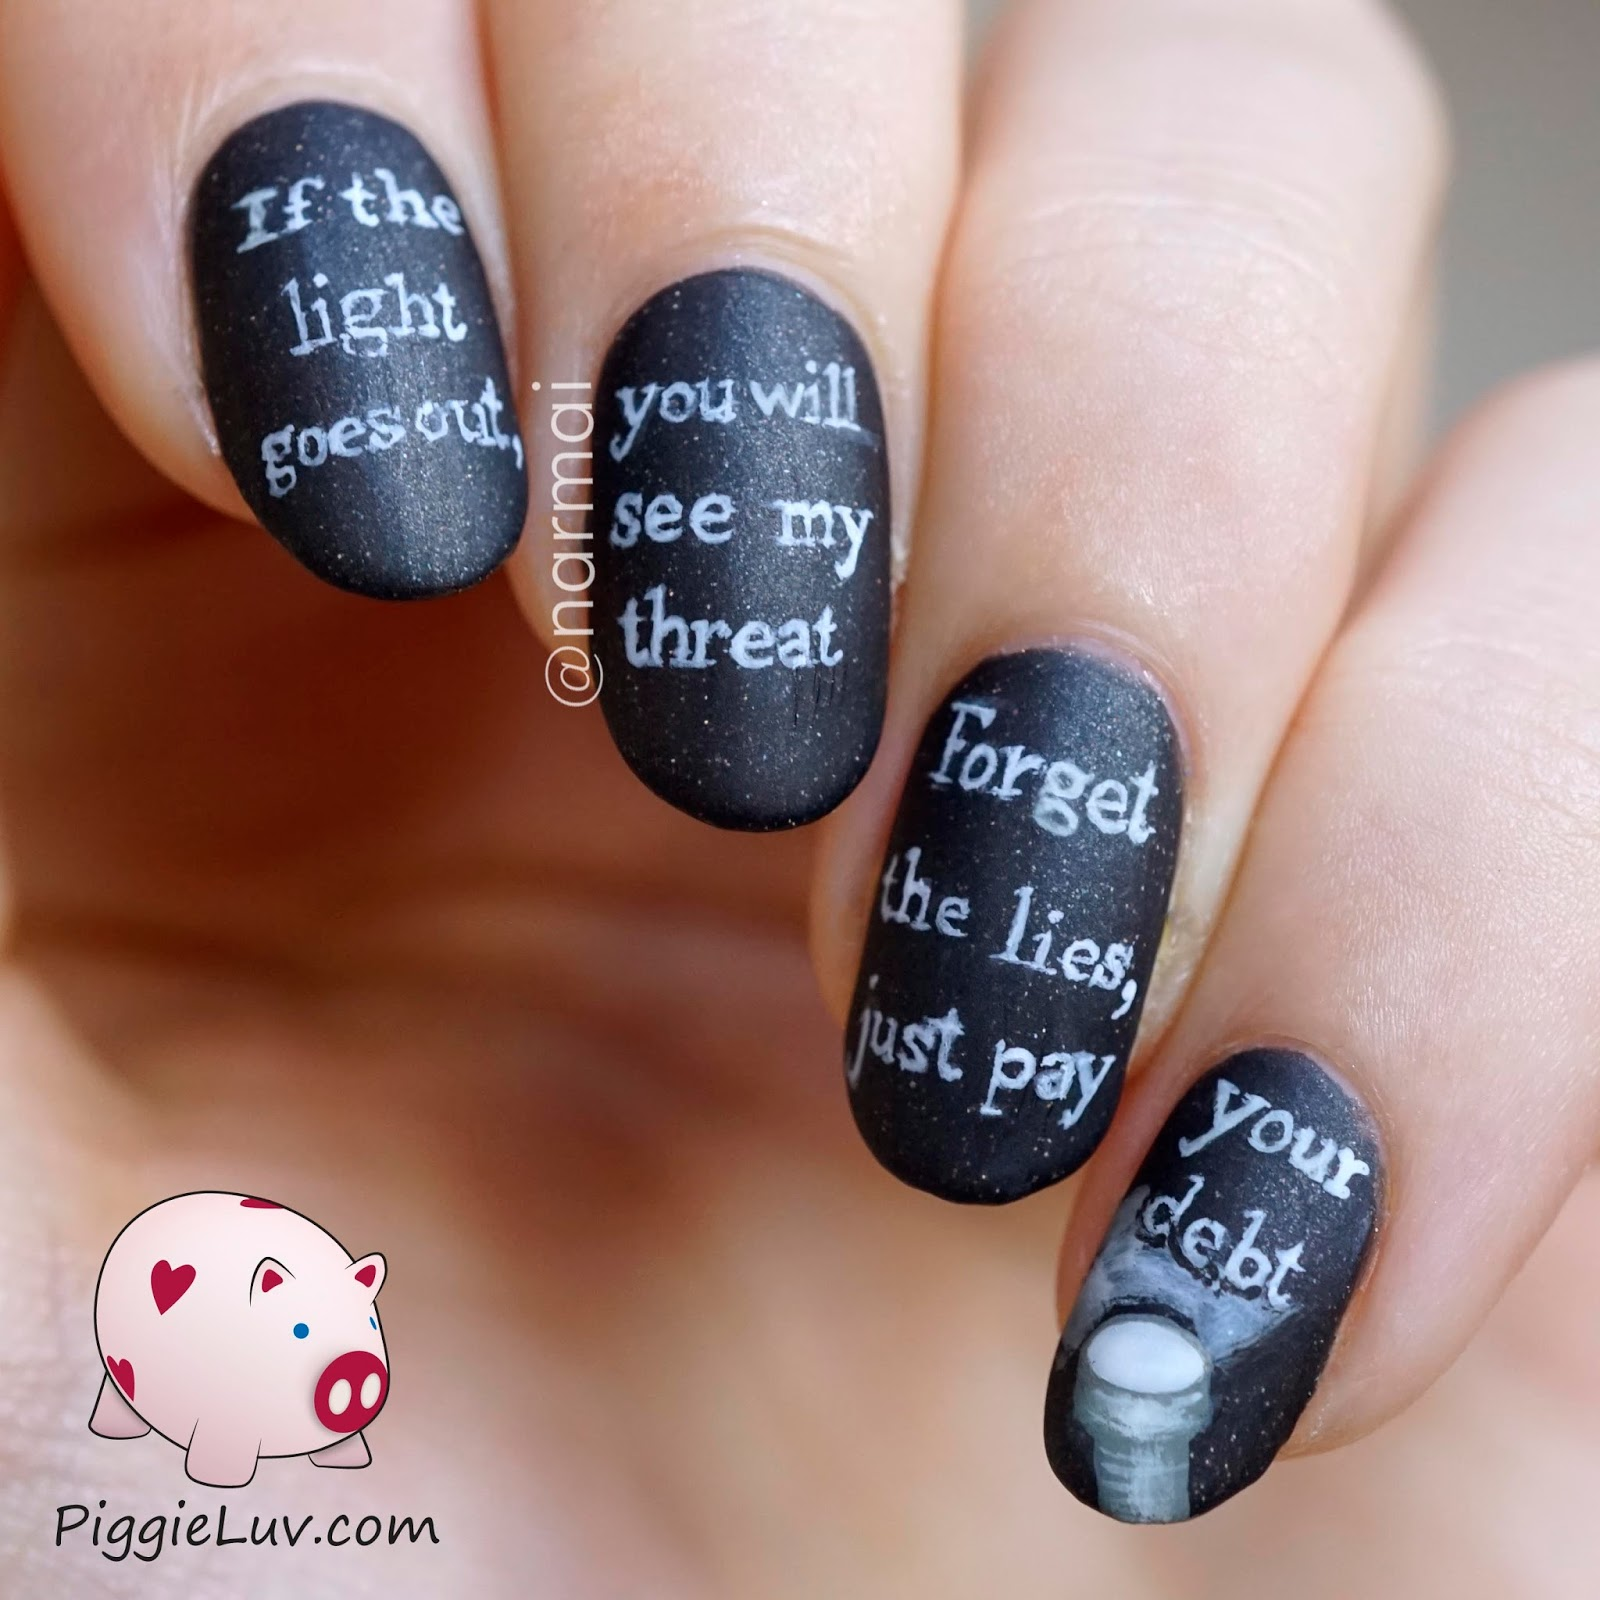 PiggieLuv: Glow in the dark threat message nail art